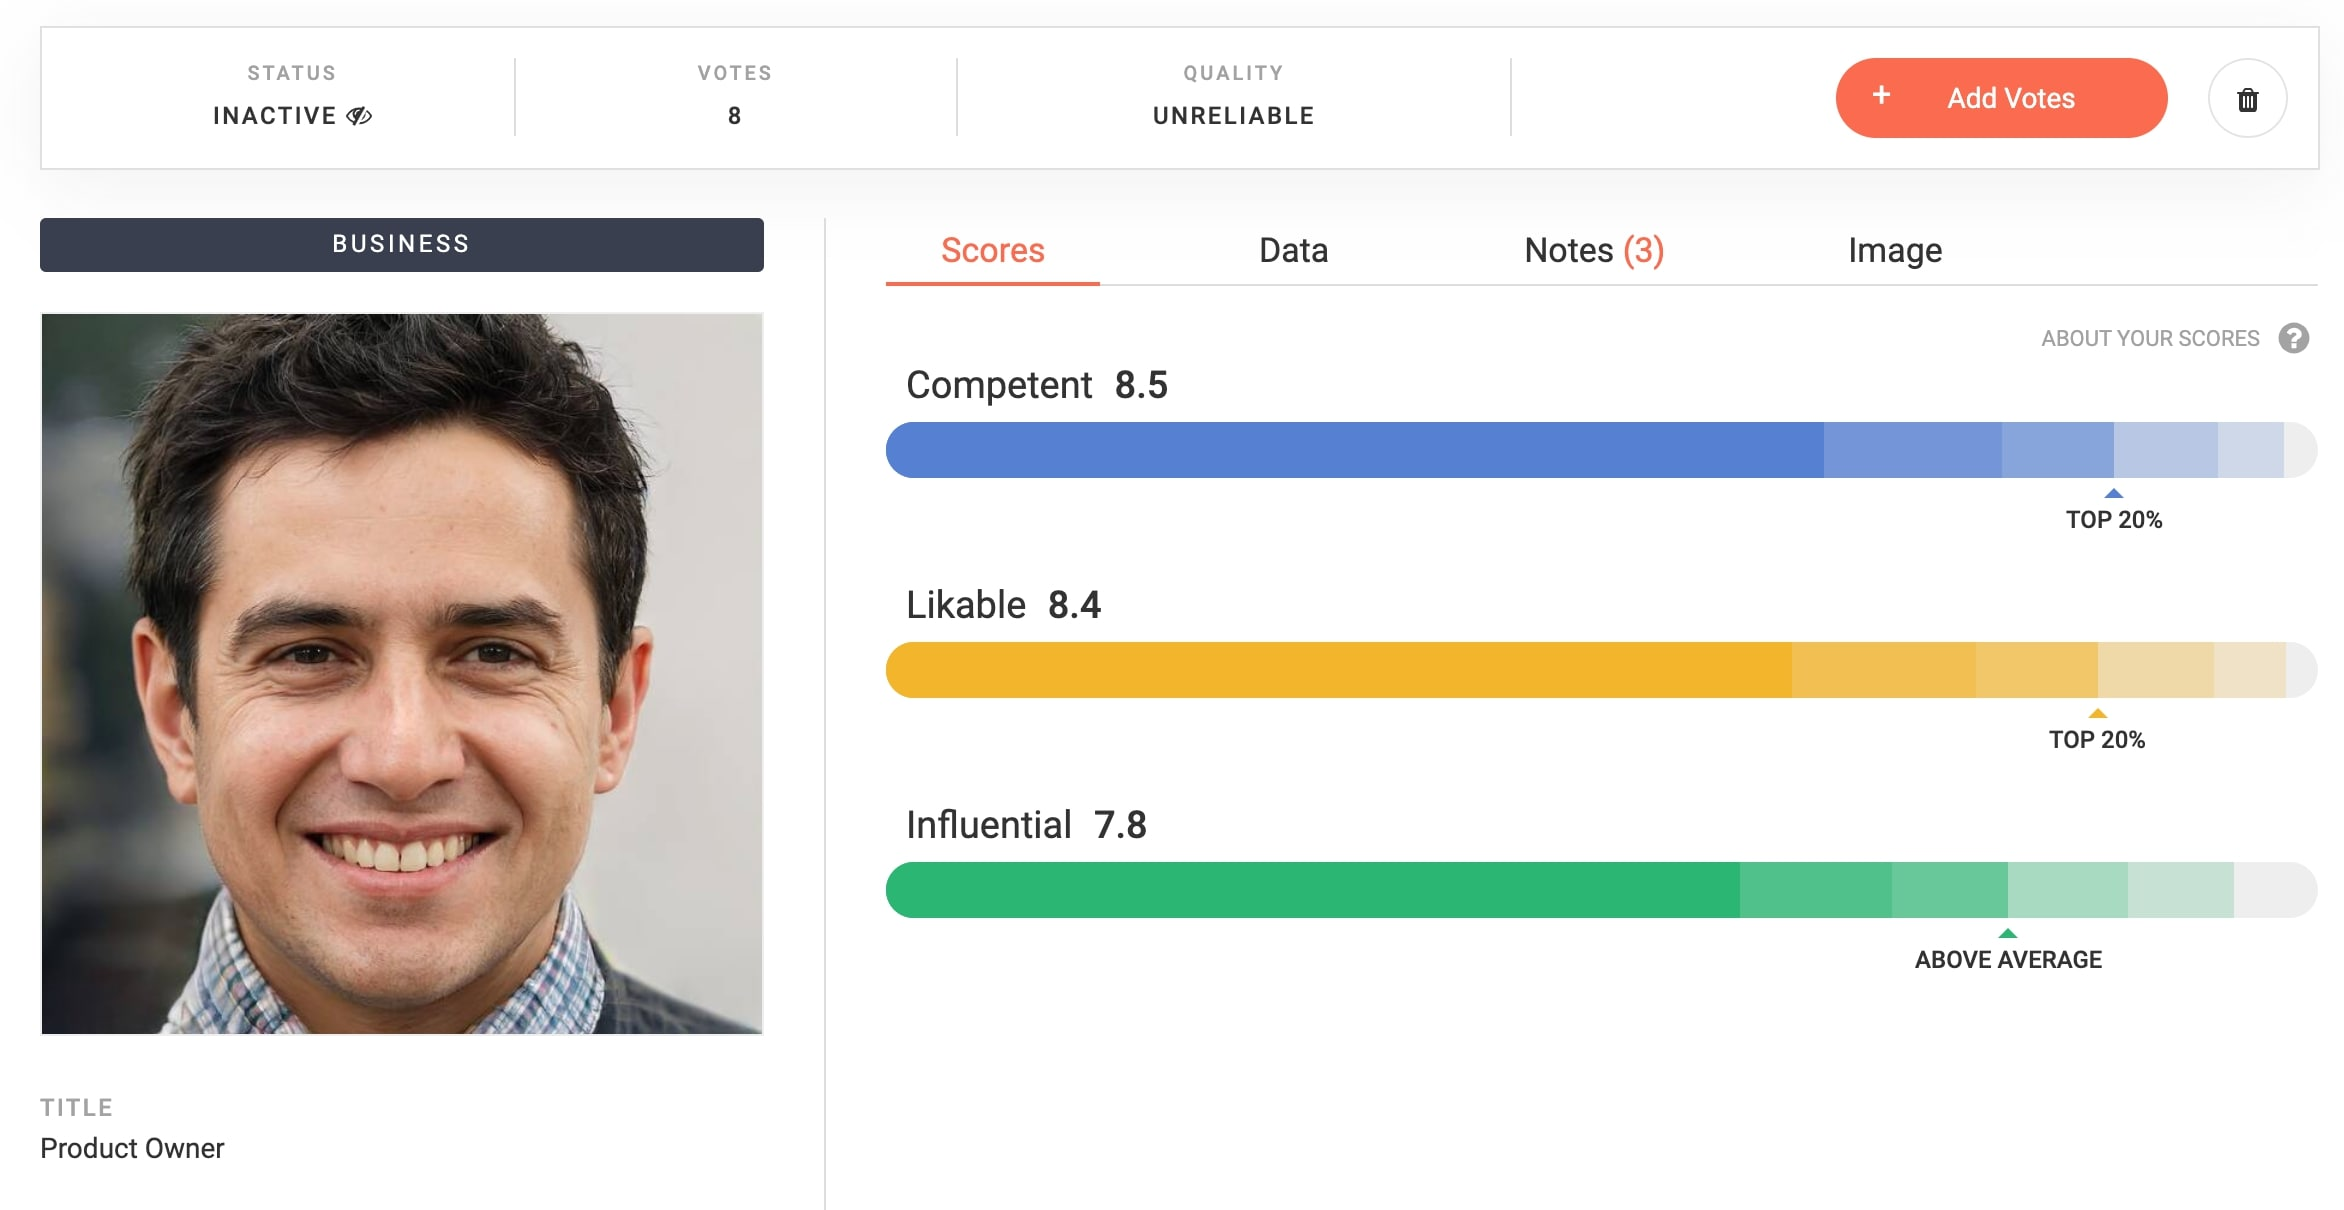 LinkedIn profile image optimization with a 3th party tool